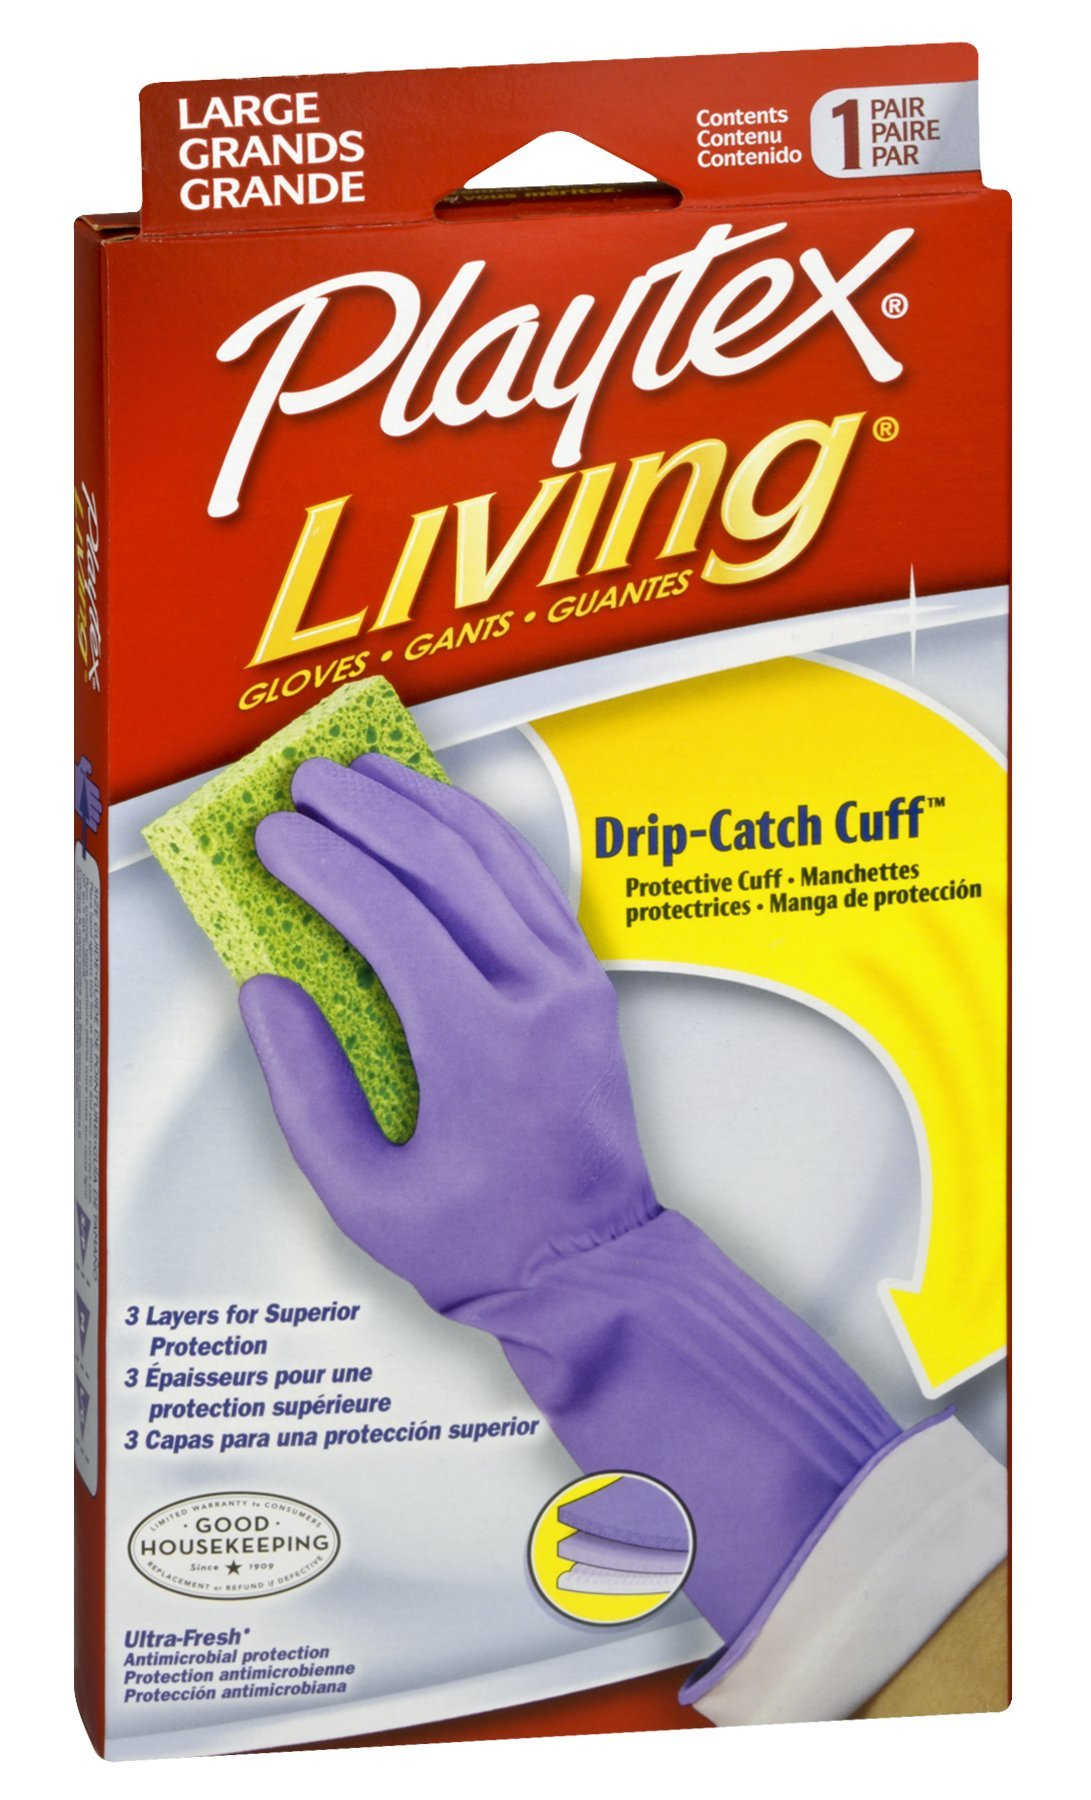 Playtex Gloves Living Premium Protection, Large 1 Pair (Pack of 72) by Playtex (Image #1)